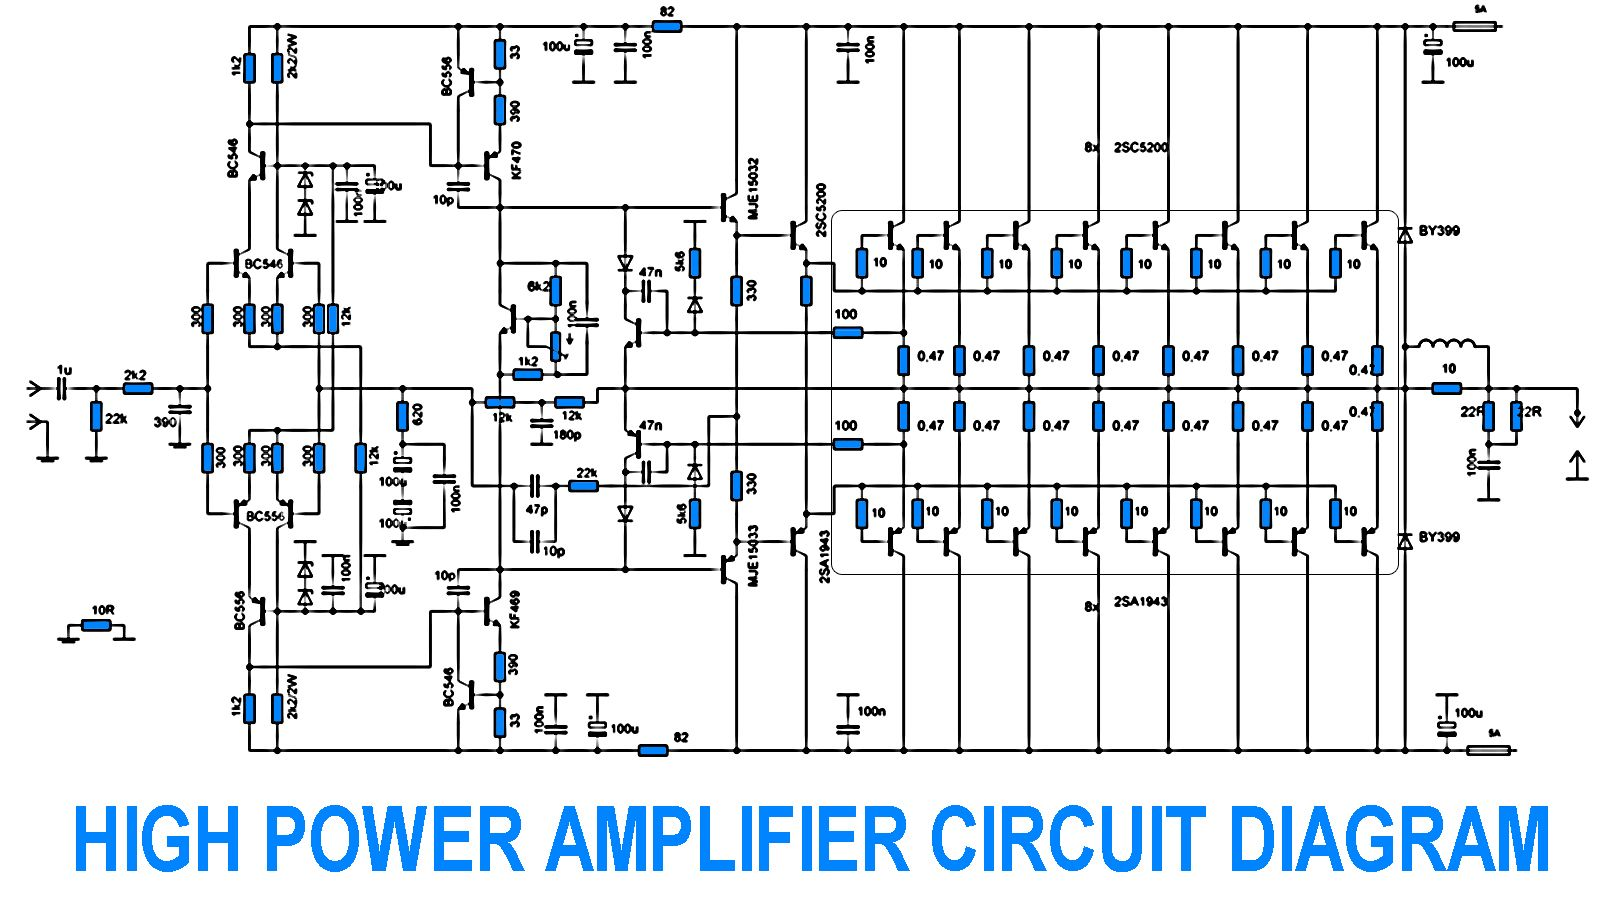 free wiring diagram 2sc5200 2sa1943 500watt amplifier circuit diagram rh freewirediagram blogspot com